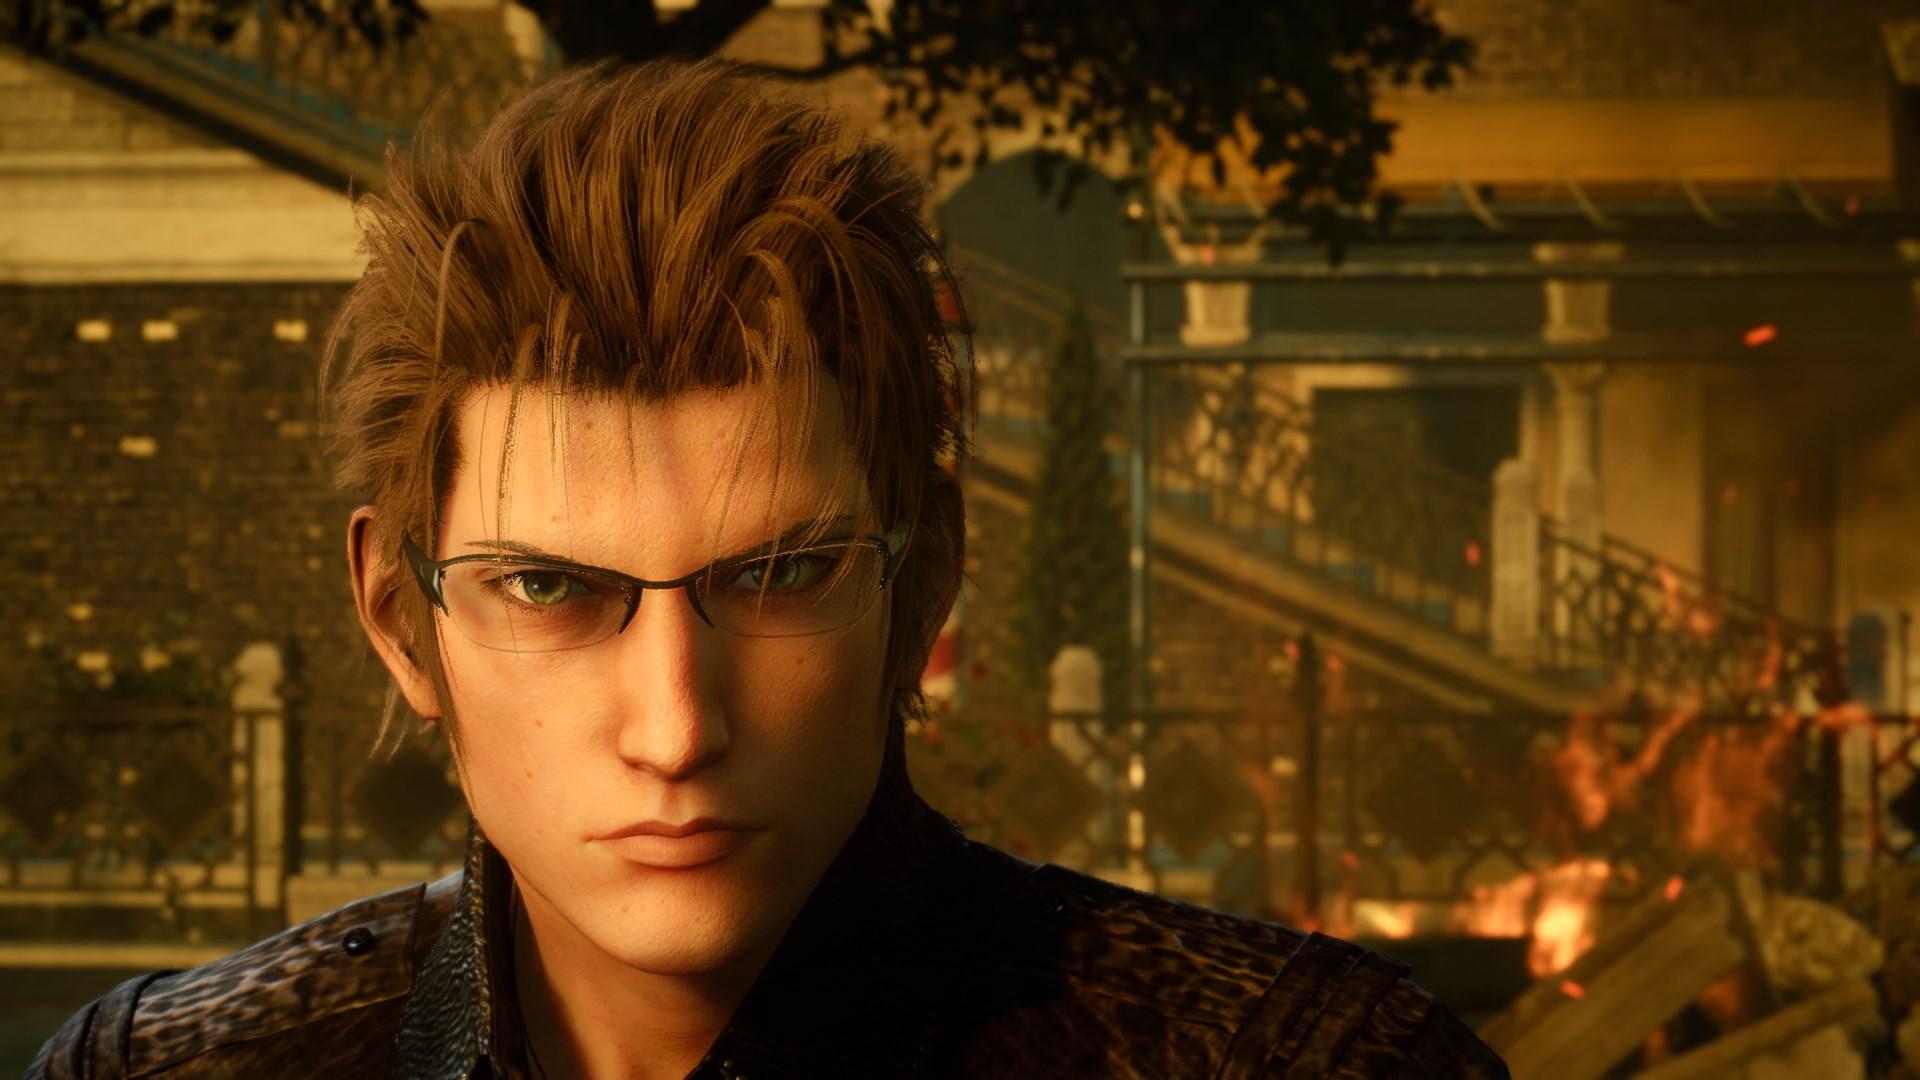 Final Fantasy 15: Episode Ignis Story Trailer and Release Date Revealed at Paris Games Week